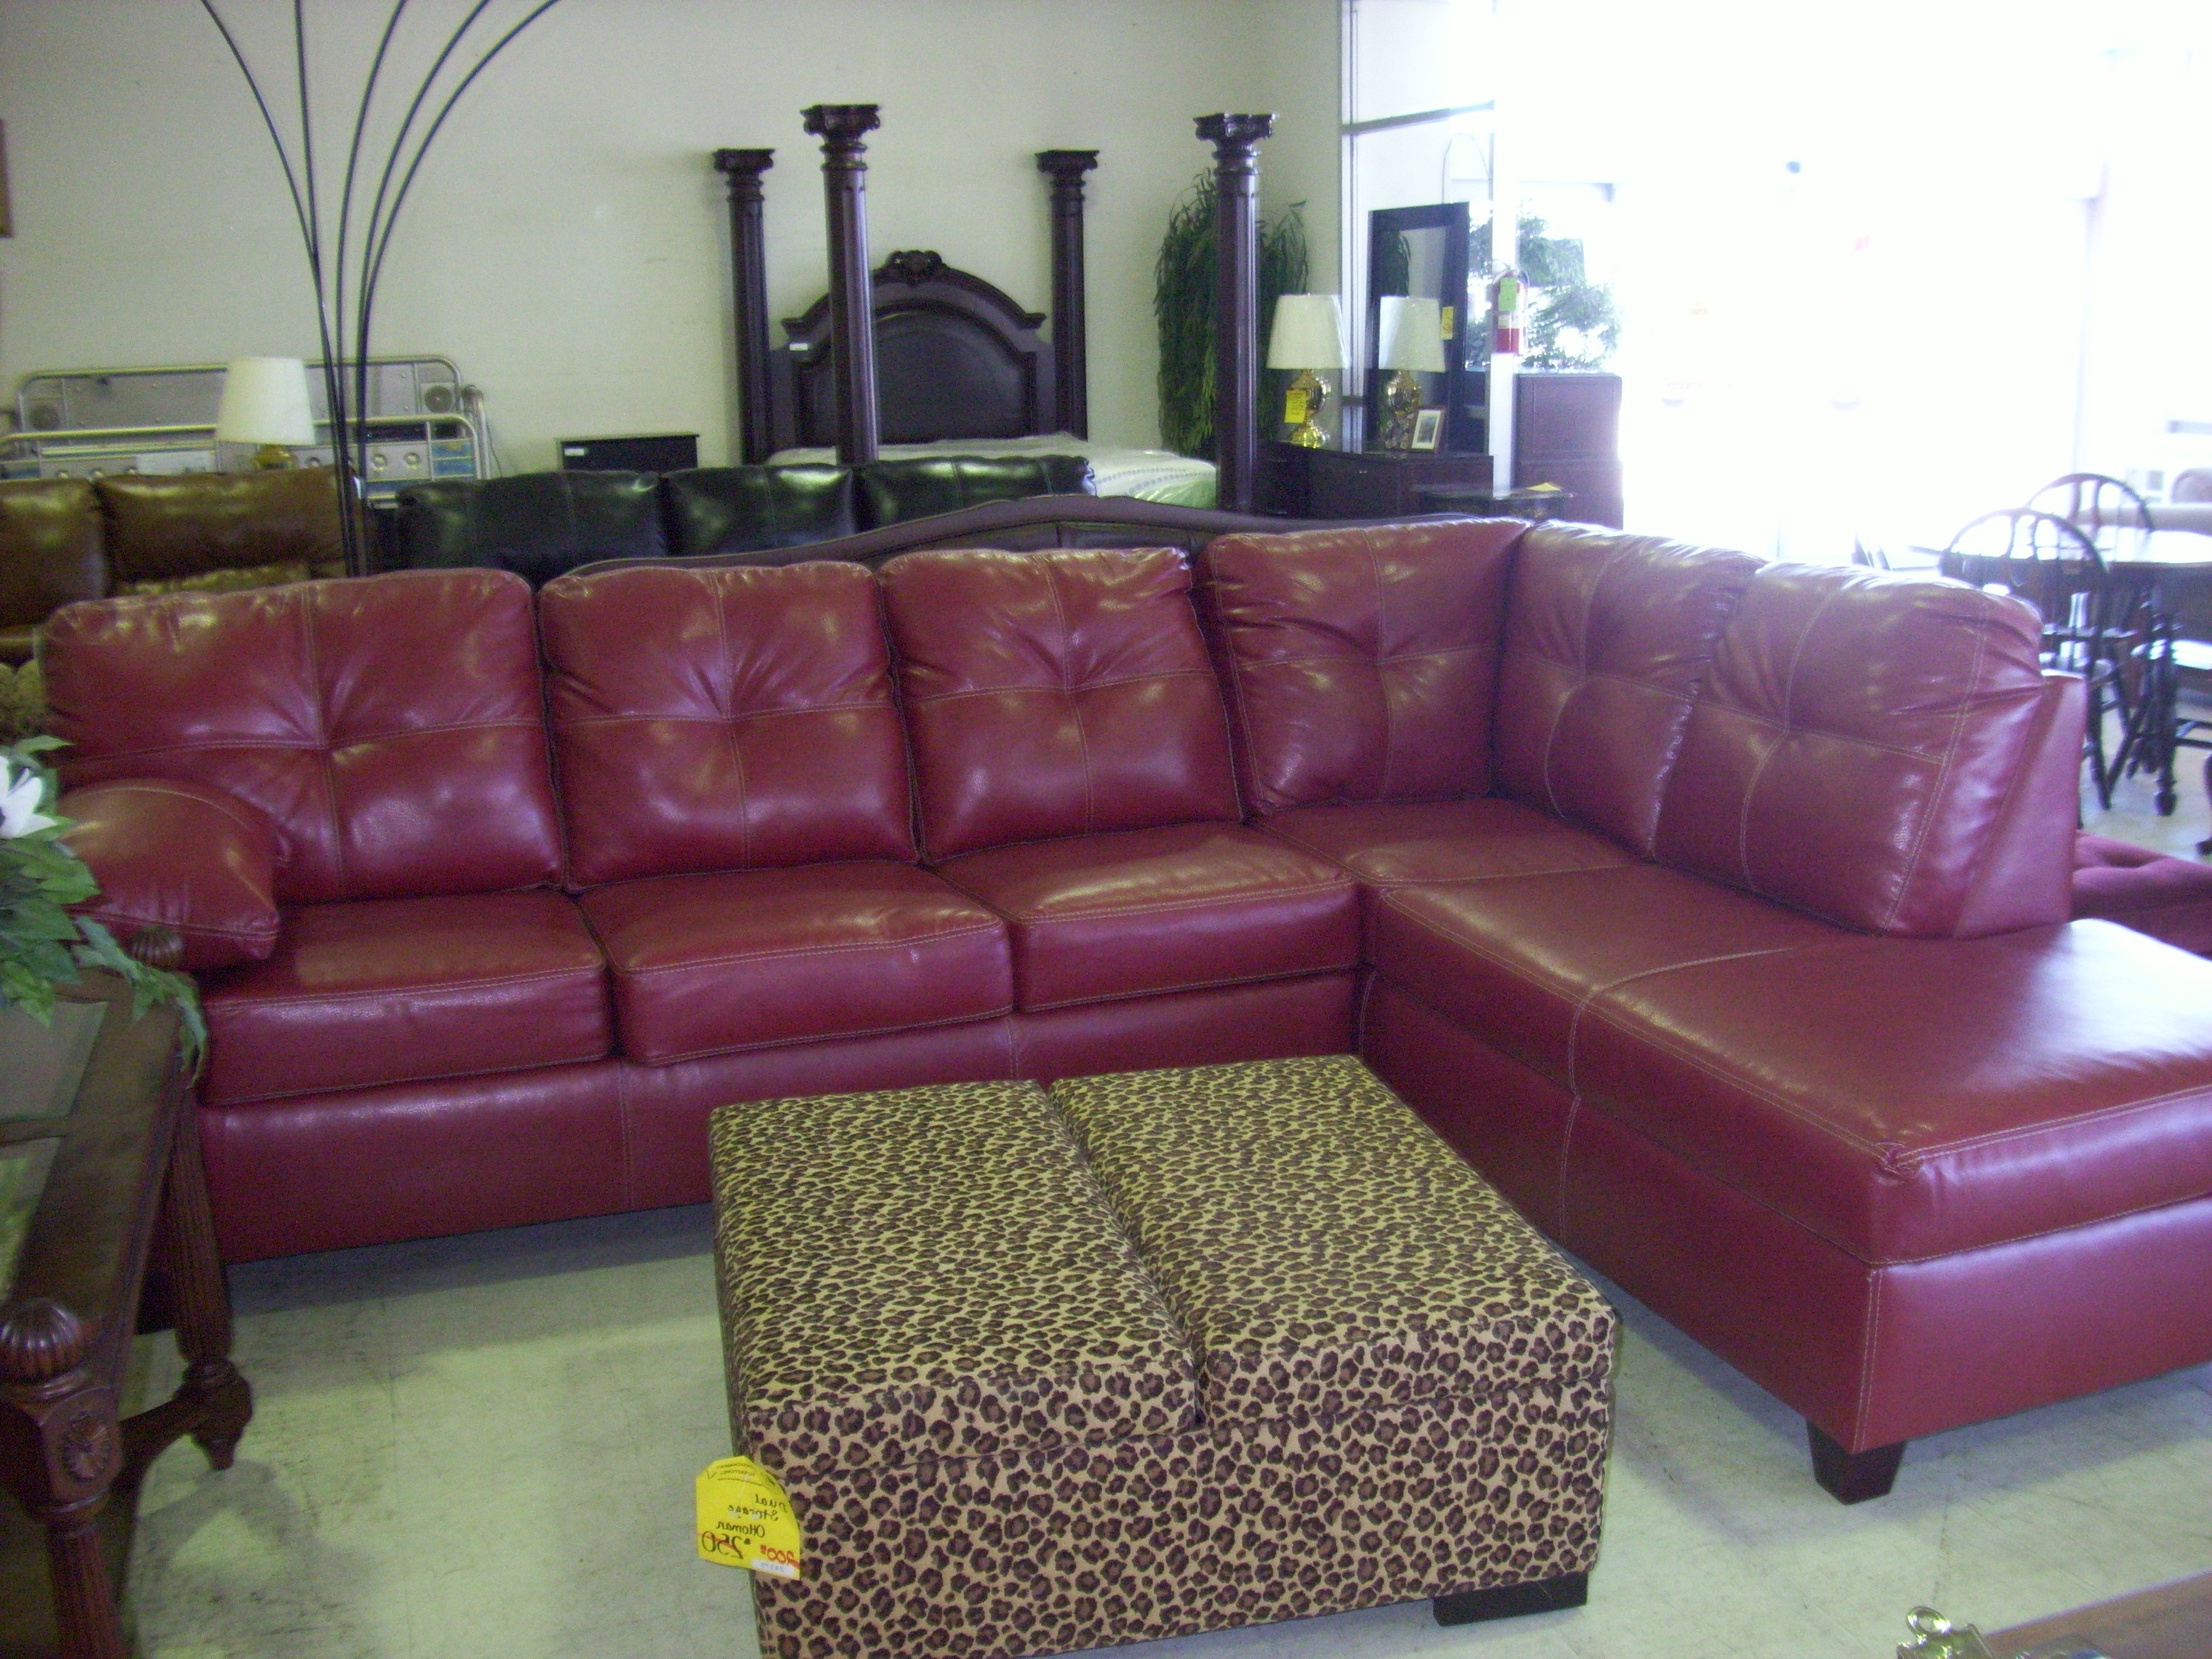 Current Living Room Decoration With Red Leather Sectional Sofa Feature L Inside Red Leather Sectional Sofas With Ottoman (View 3 of 20)